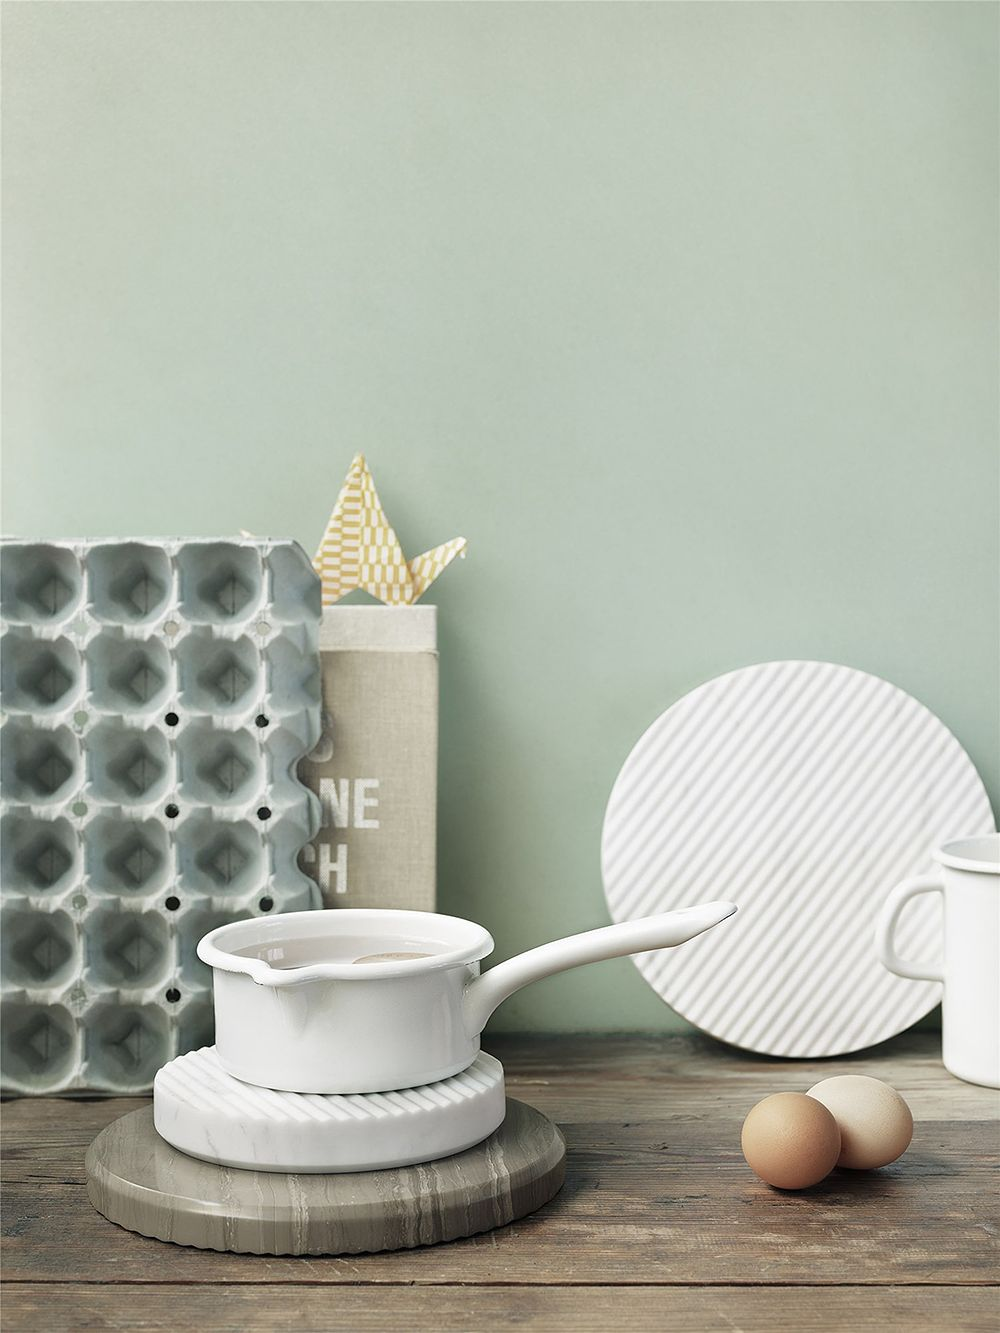 Muuto's Groove trivets in a kitchen setting.